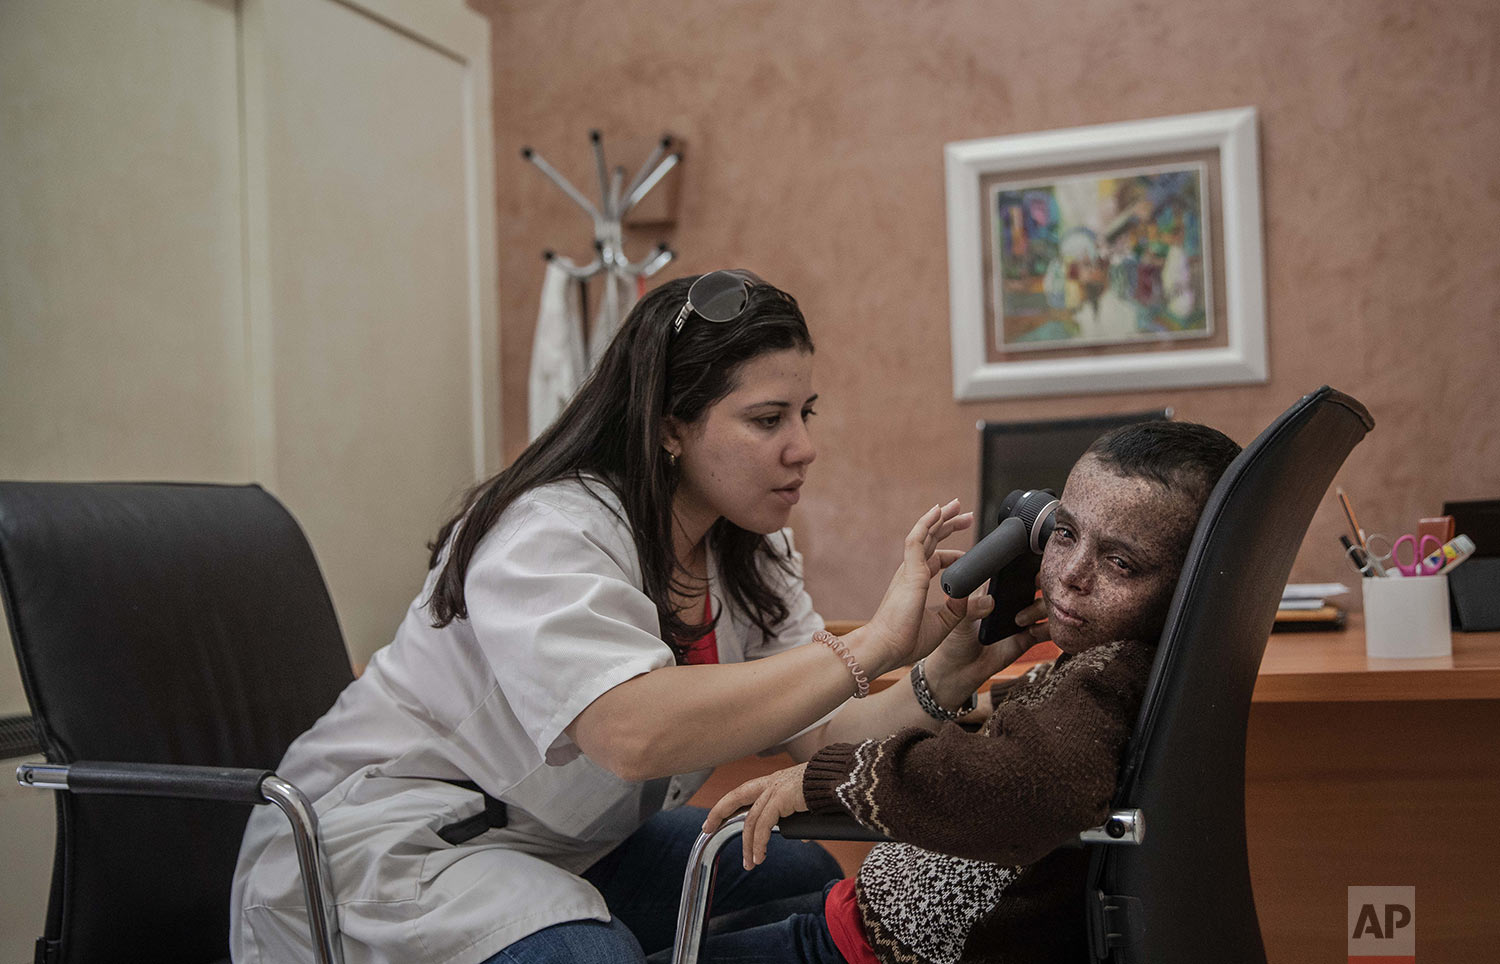 A nurse performs skin checkups for 8-year-old Mustapha, who is affected by a rare disorder called xeroderma pigmentosum, or XP, inside a hospital in Casablanca, Morocco, July 24, 2019. (AP Photo/Mosa'ab Elshamy)